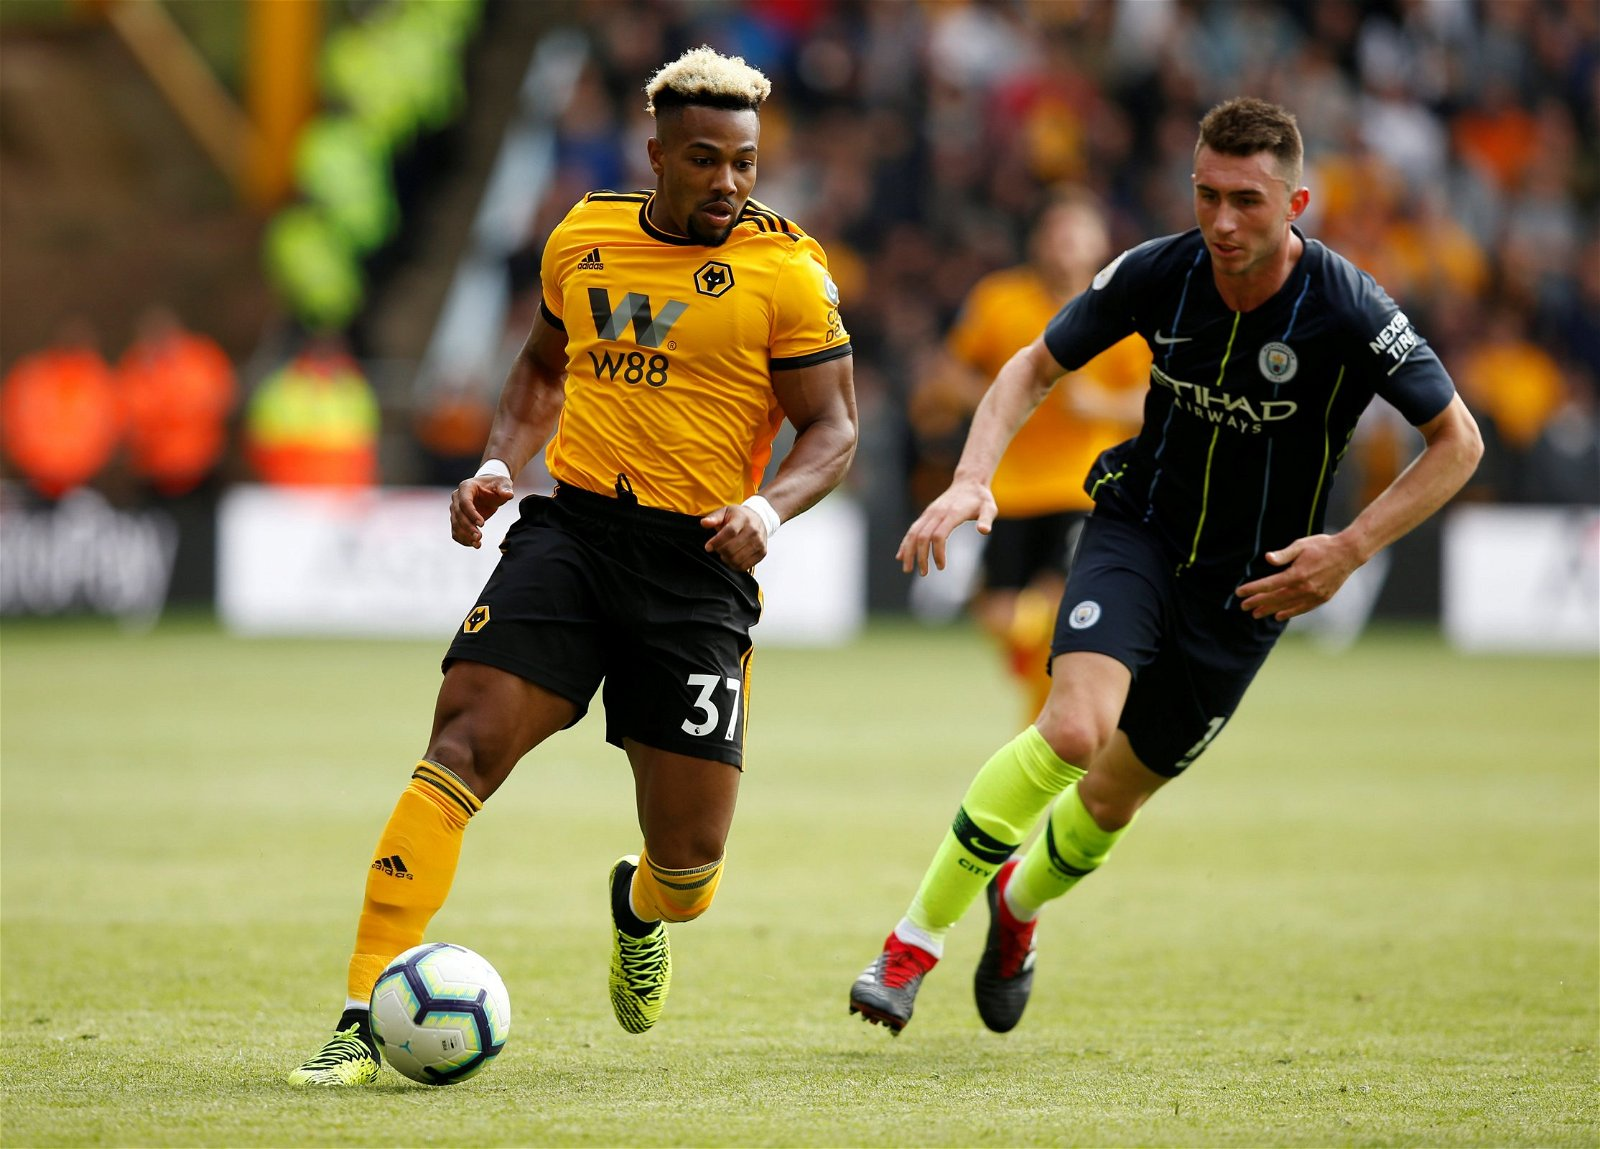 Wolves winger Adama Traore gets away from Man City defender Aymeric Laporte